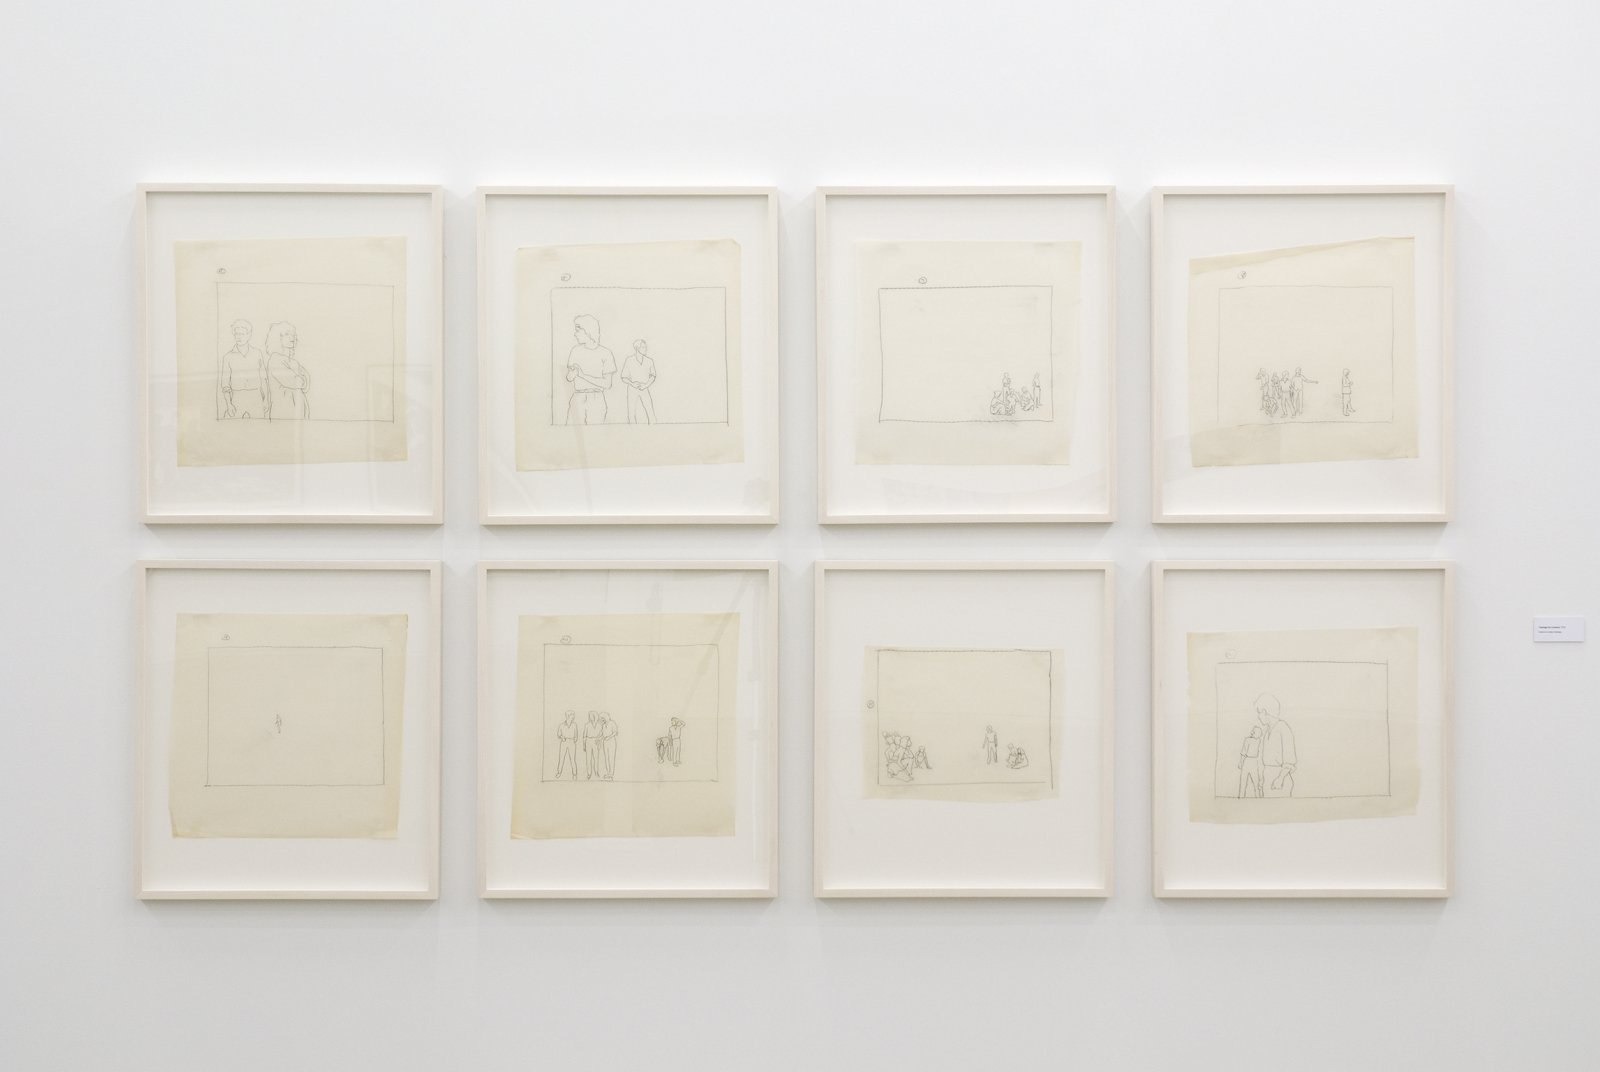 Ian Wallace, Tracings for Lookout, 1979, 8 pencil tracings on vellum, 27 x 24 in. (69 x 61 cm) by Ian Wallace